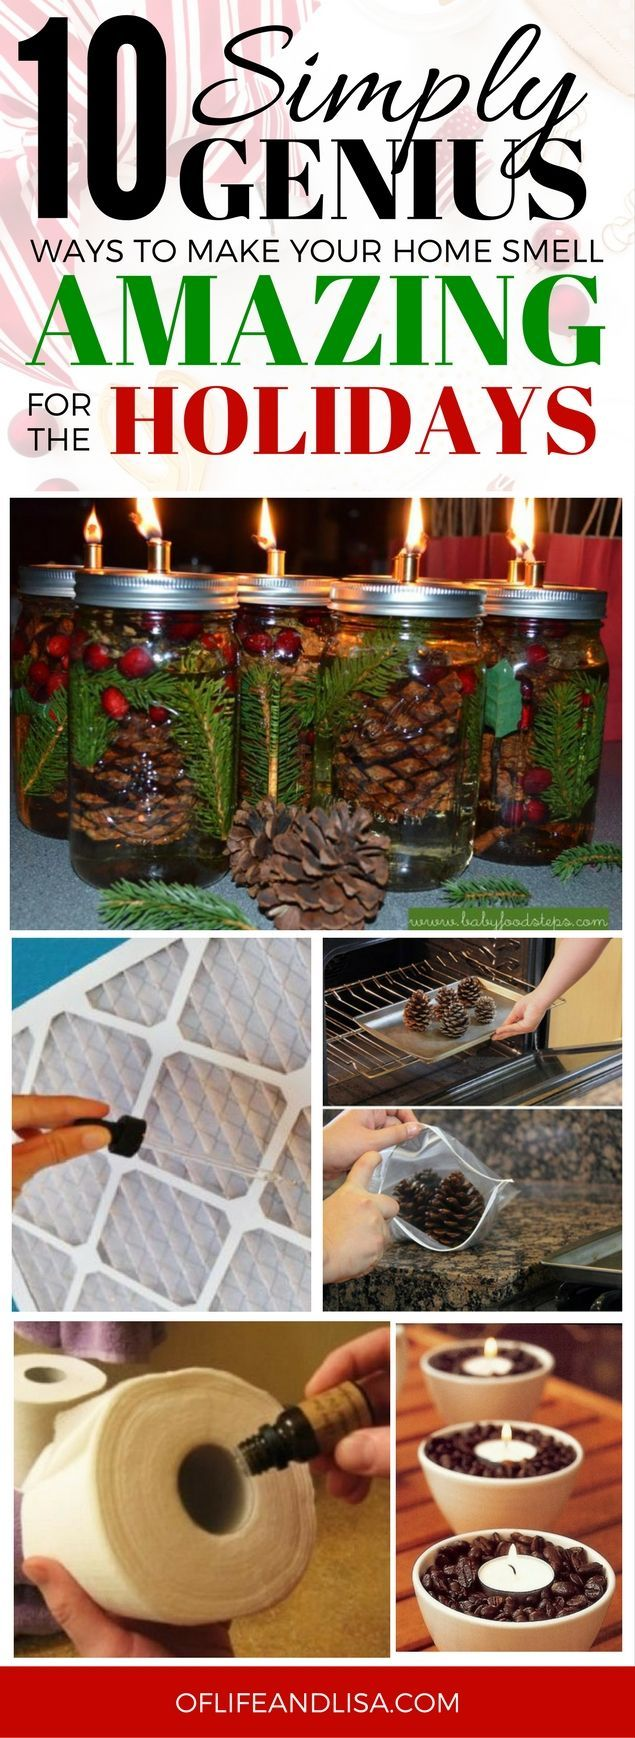 Amazing smell hacks for the holidays!